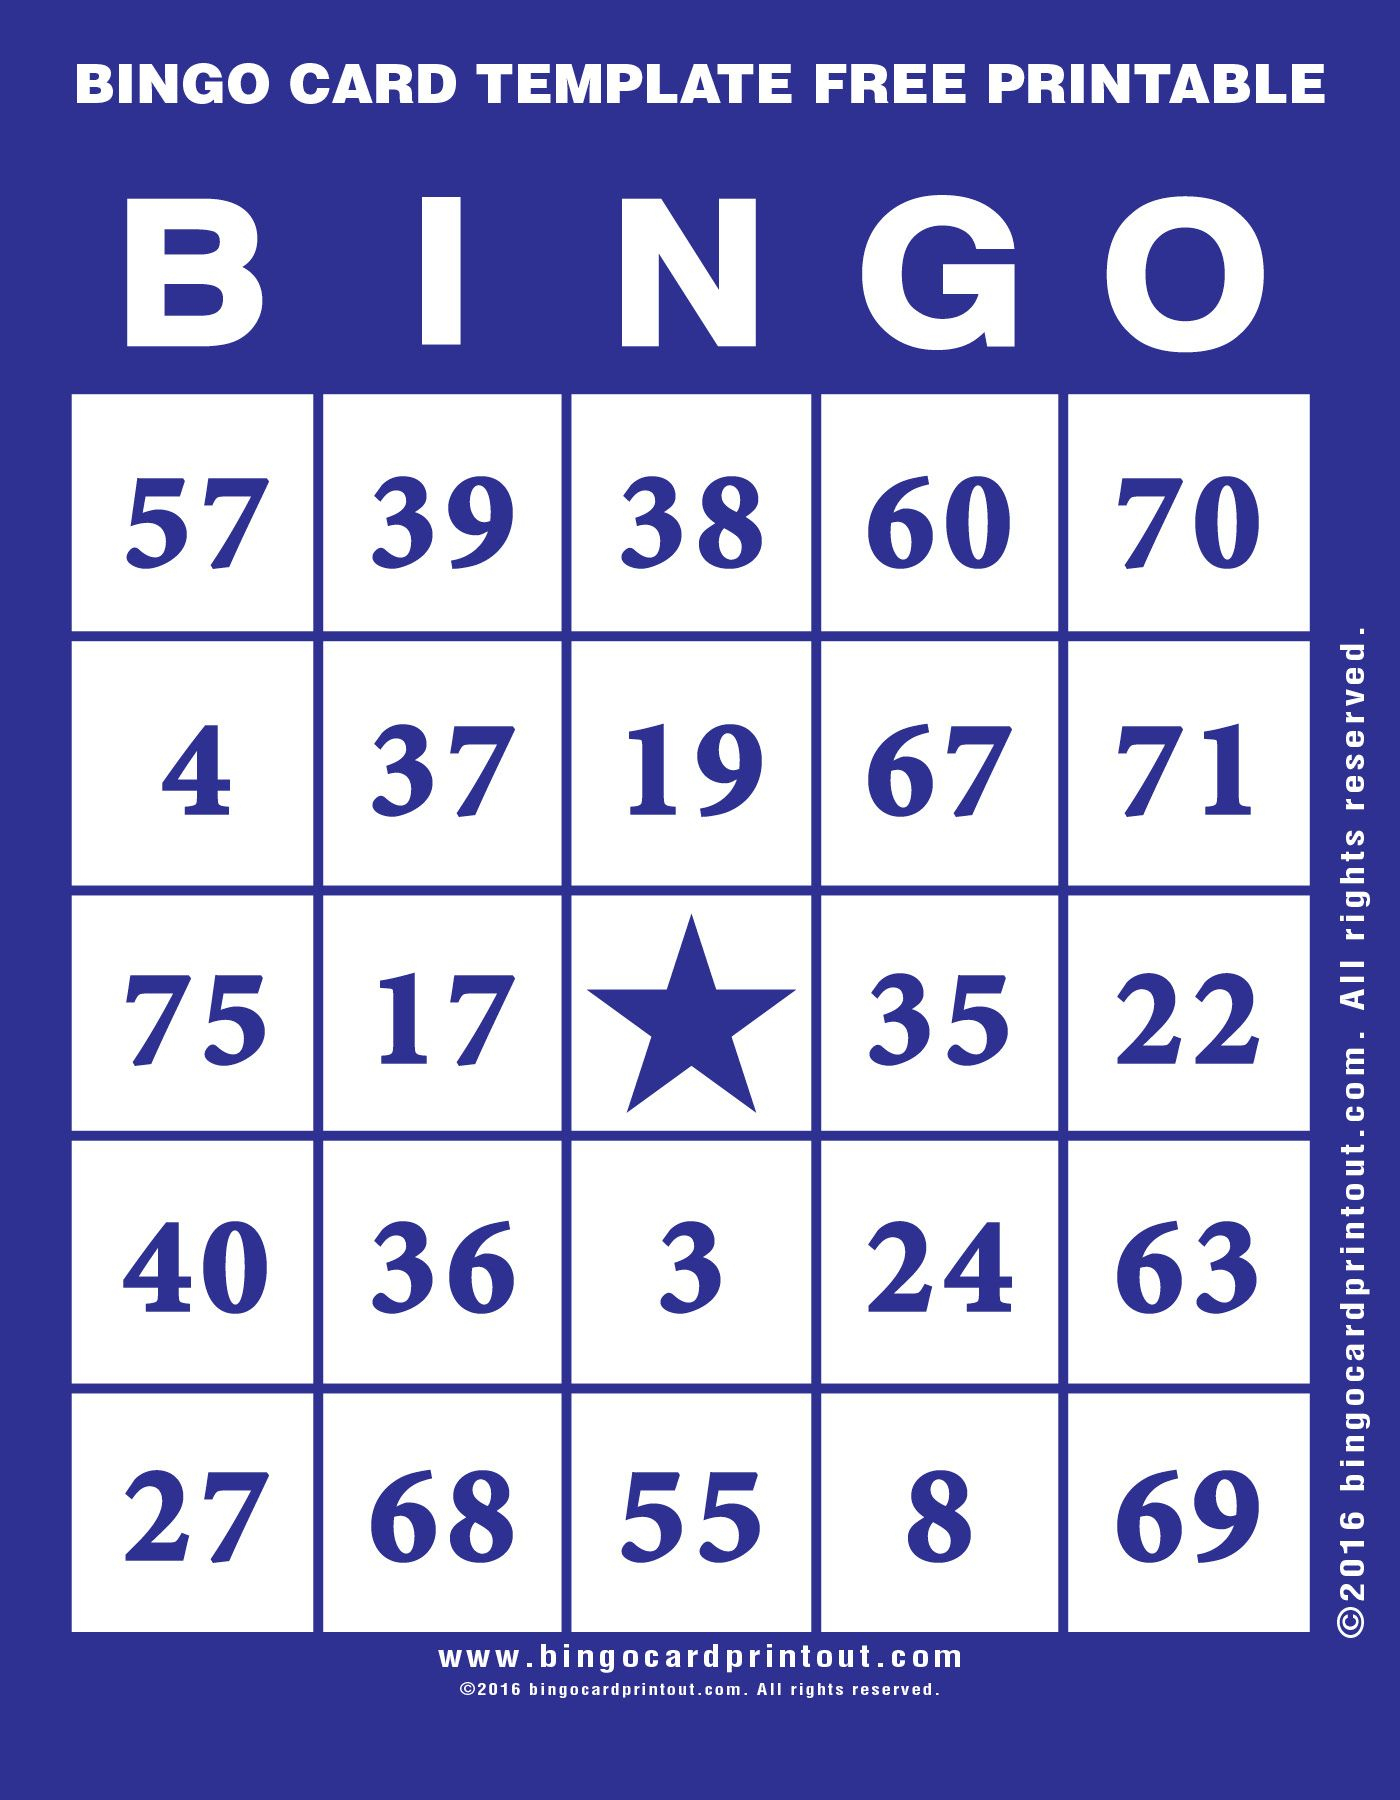 Bingo Card Template Free Printable 6 | Bingo Cards Printable